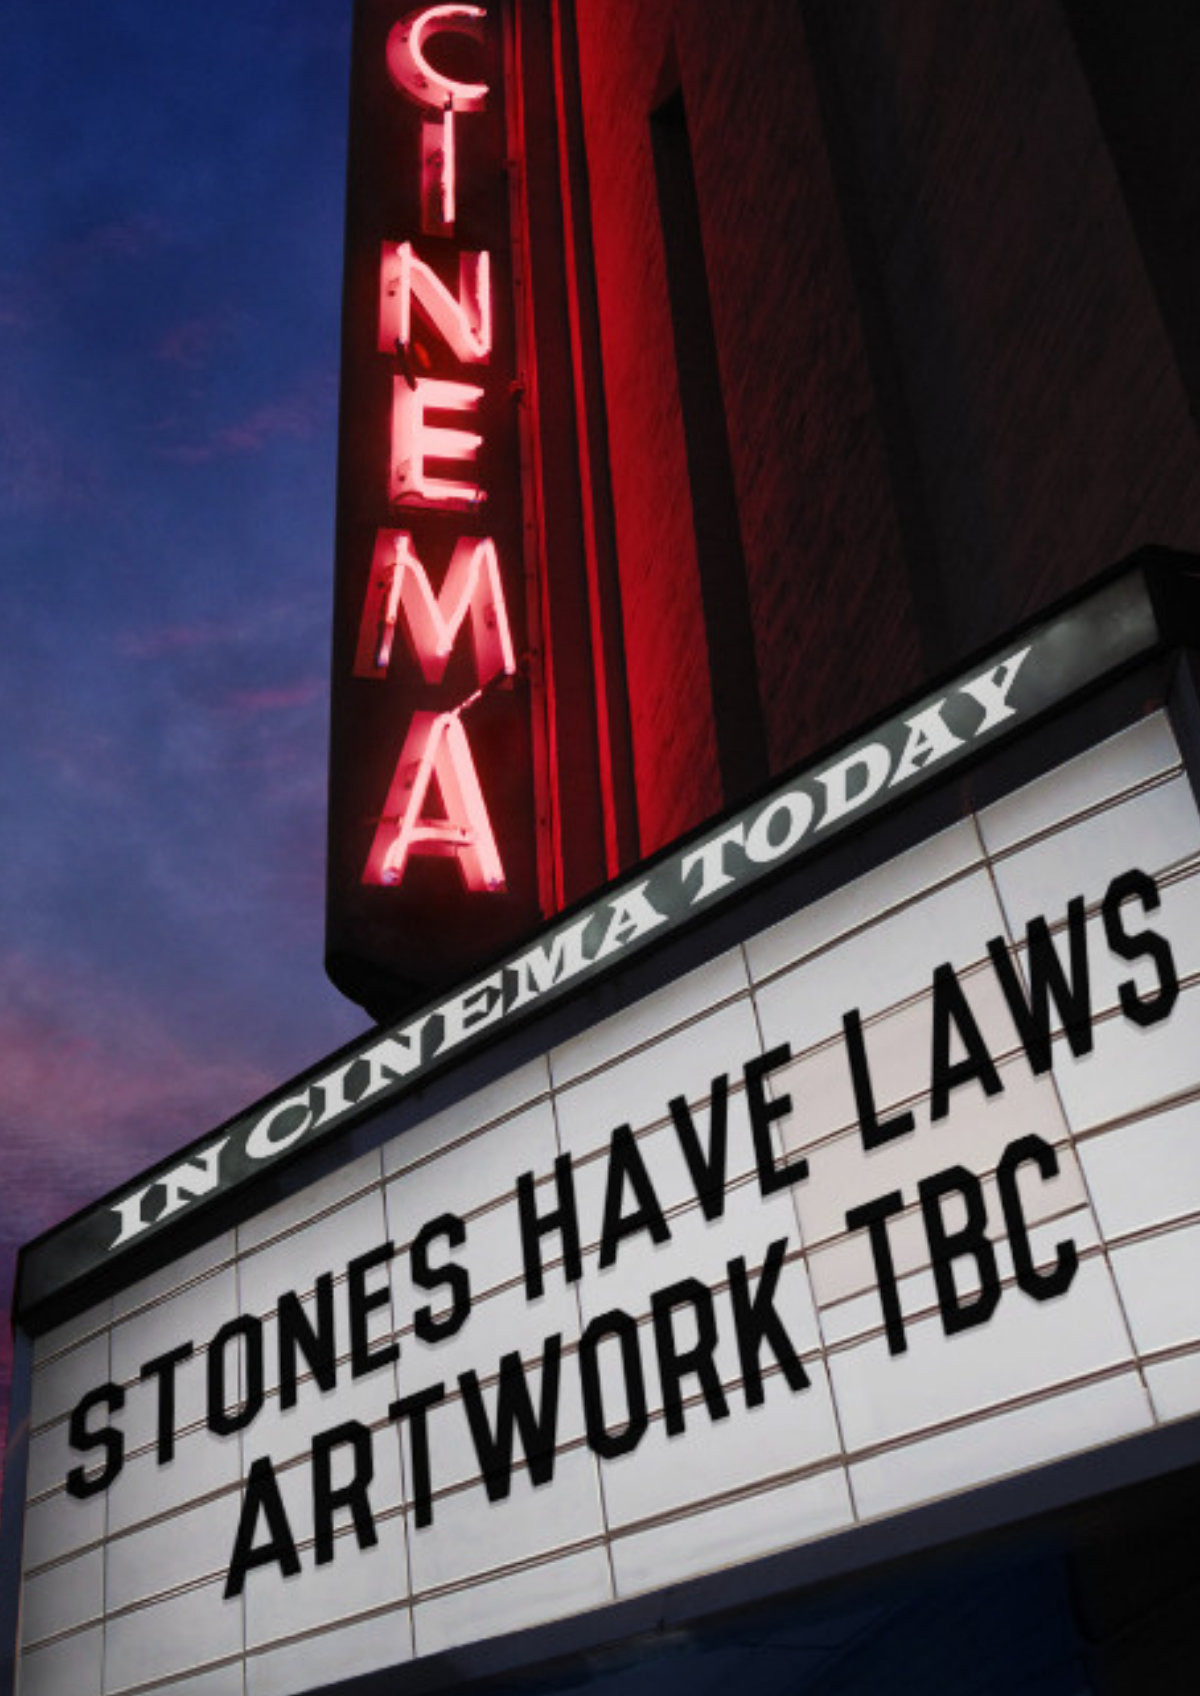 'Stones Have Laws (Dee Sitonu a Weti)' movie poster